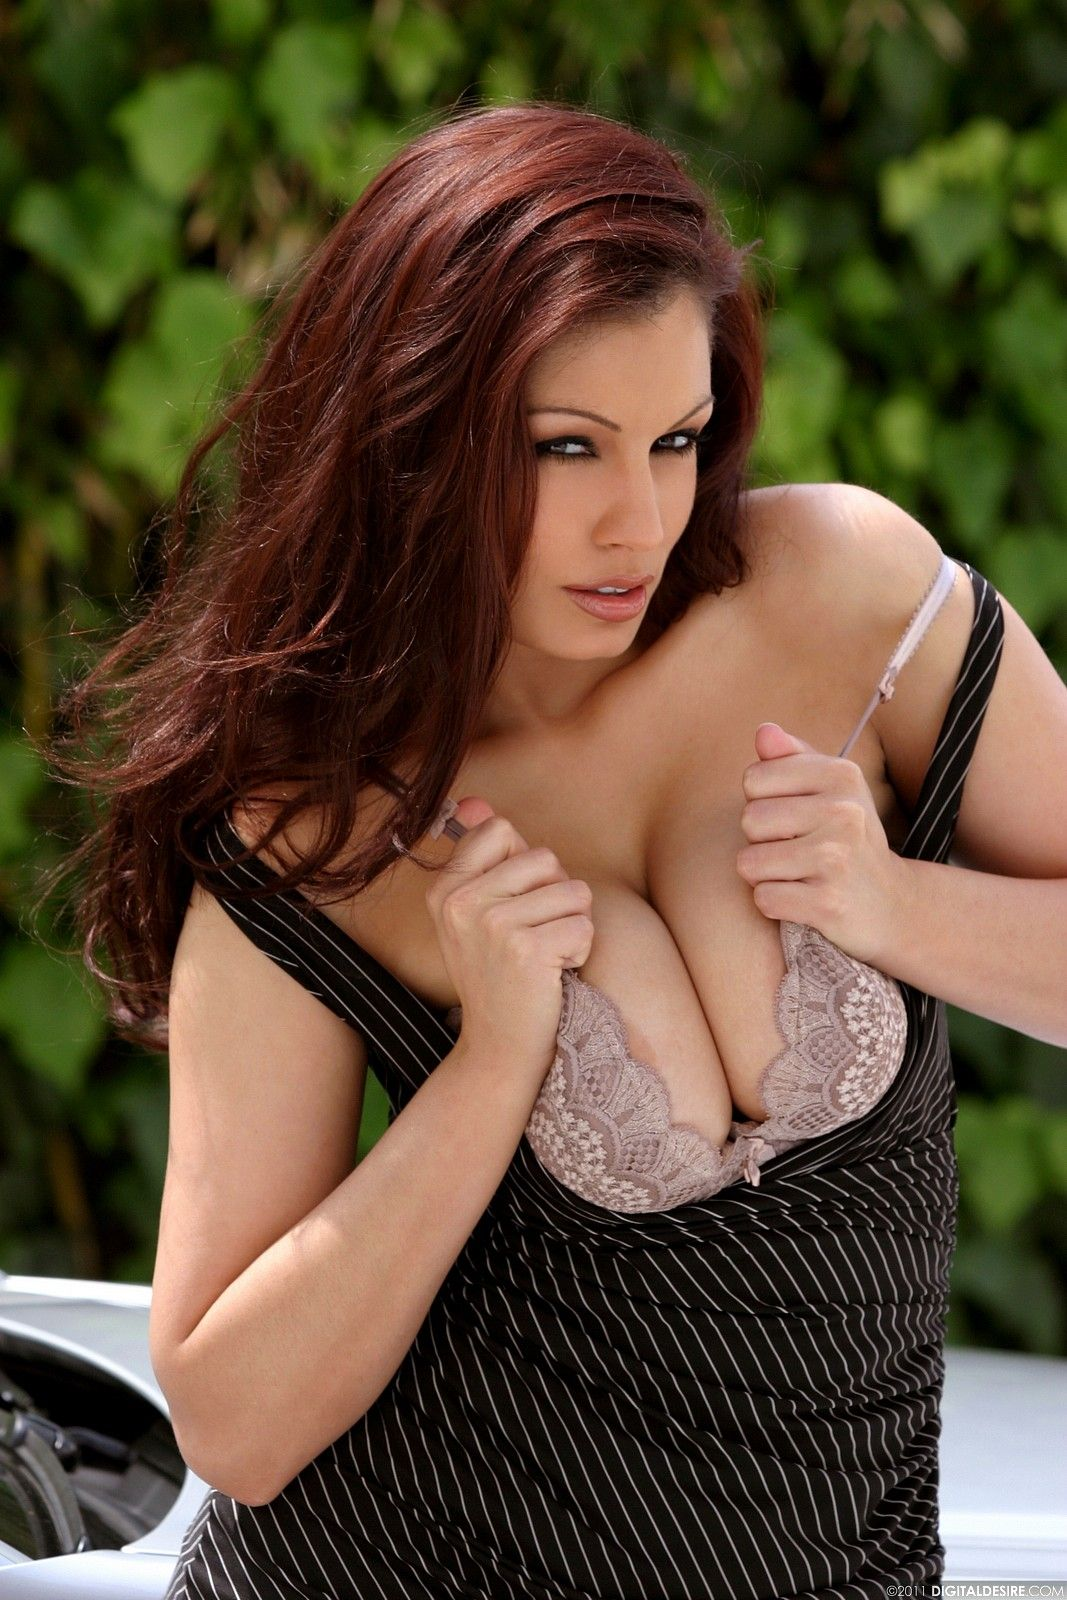 Sunny leone join free xvideos com - 1557